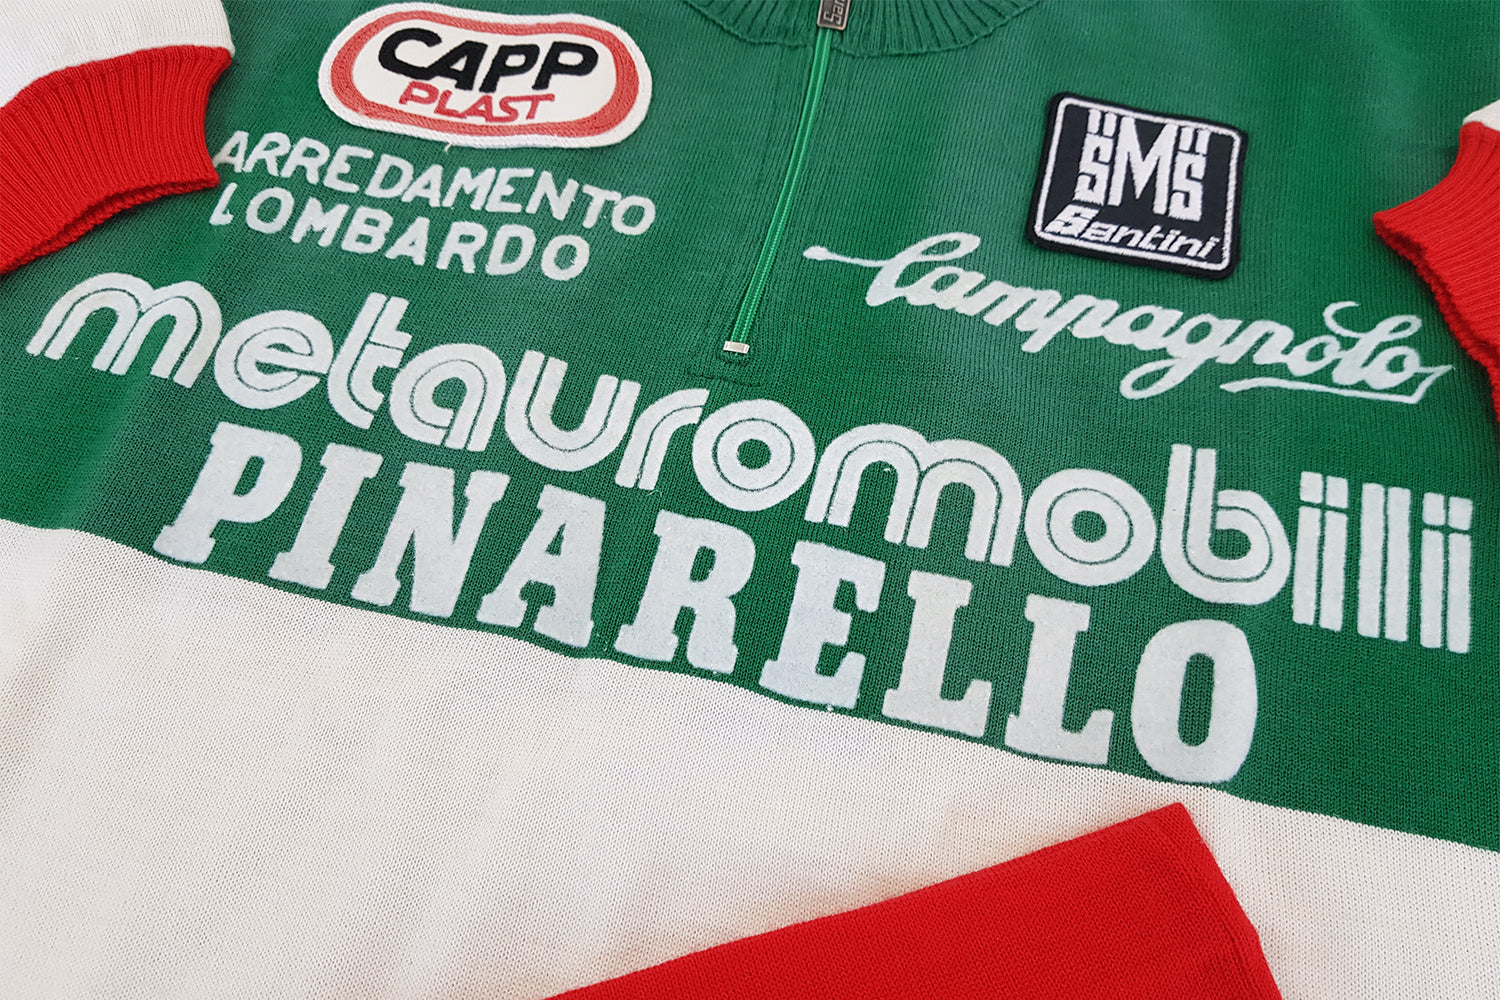 Metauro Mobili/Pinarello/Italian National Champion Wool Jersey by Santini.